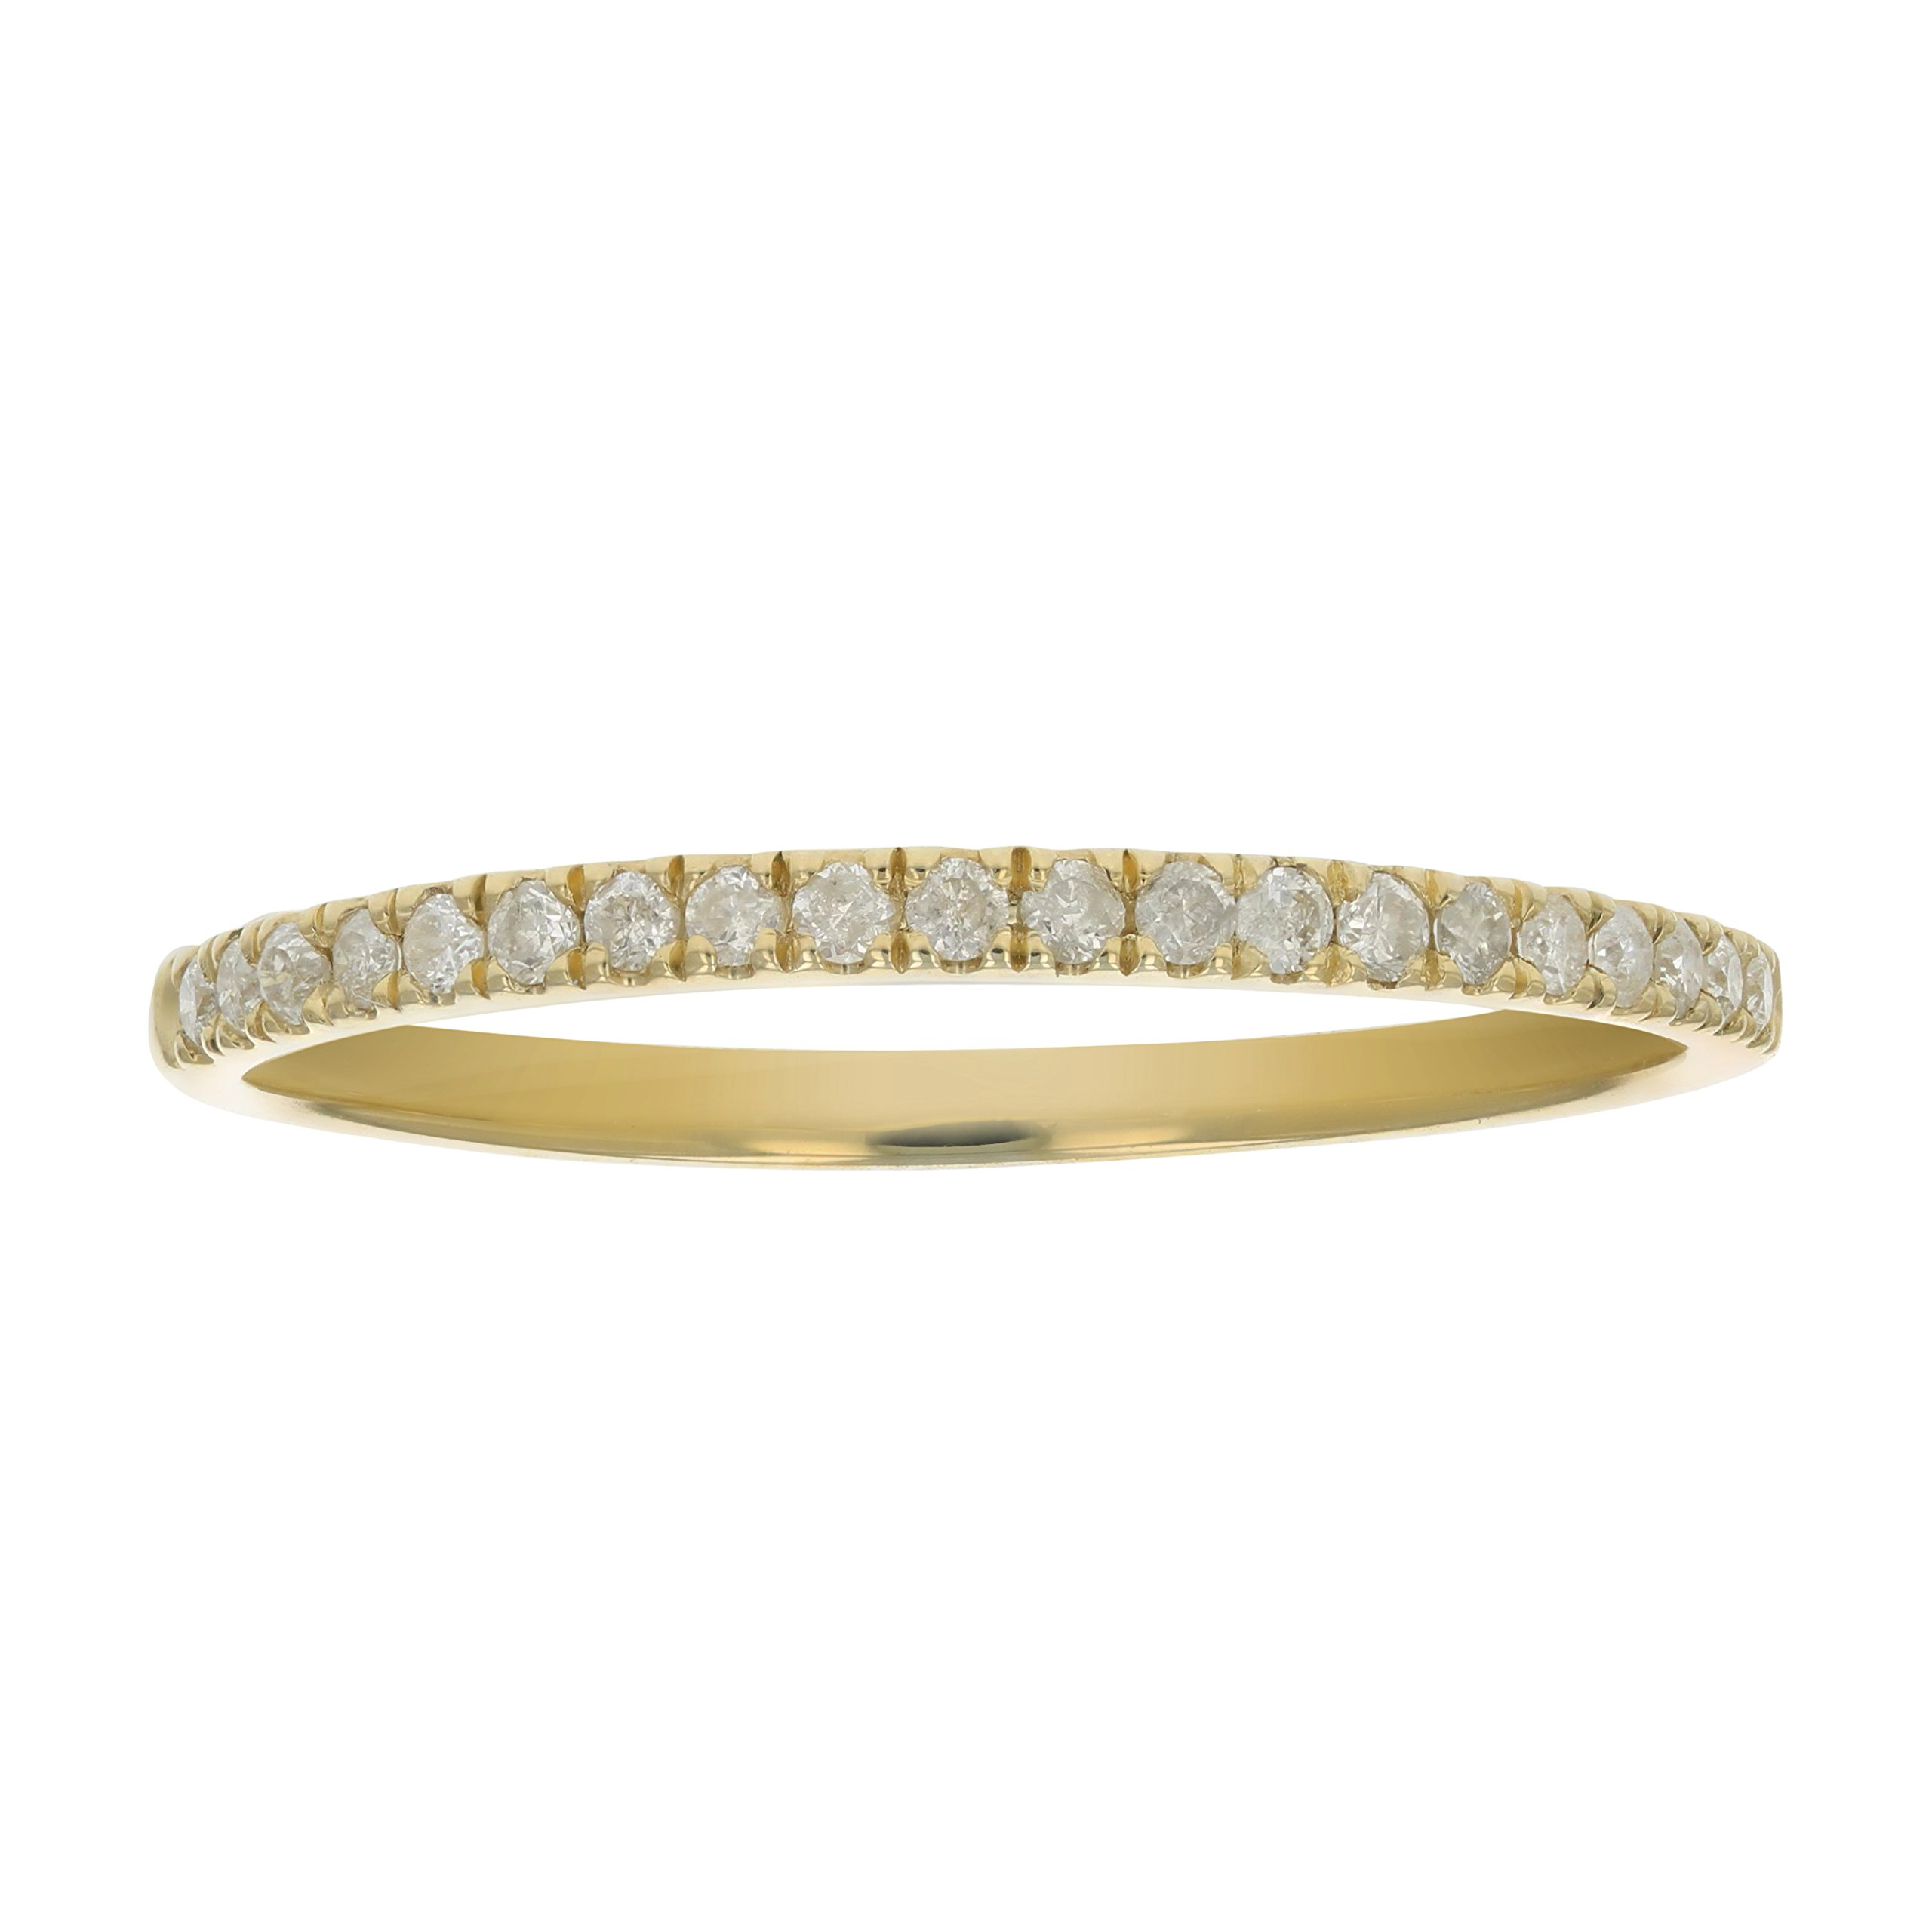 1/6 ctw Micropave Diamond Wedding Band in 10K Yellow Gold In Size 7